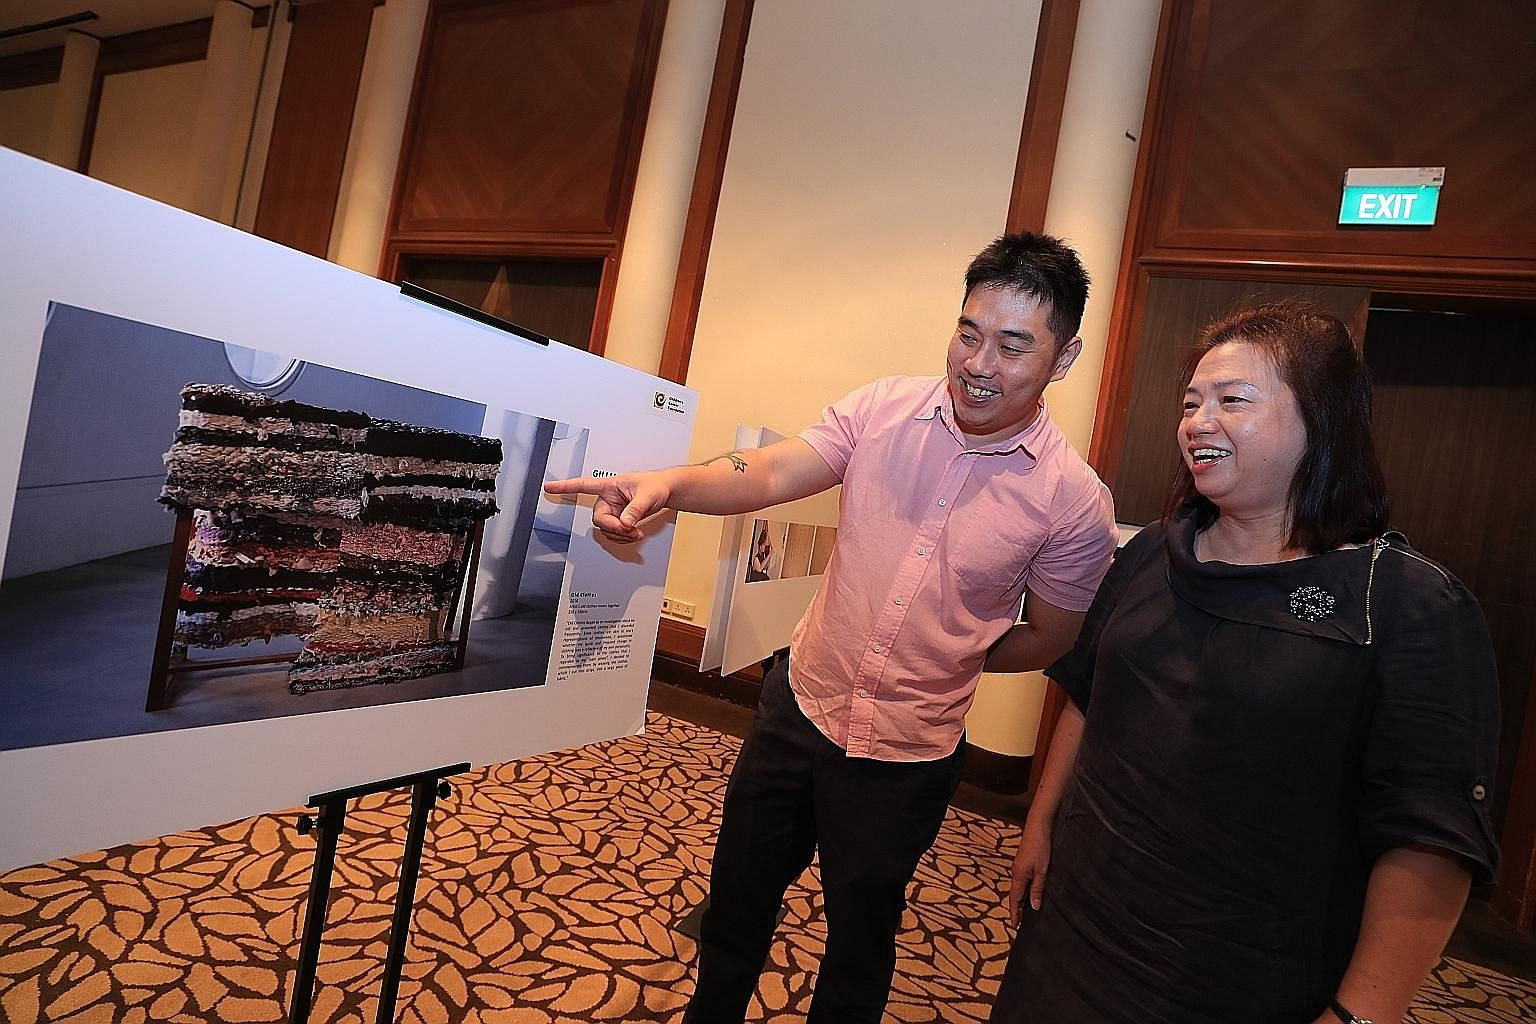 Madam Stephanie Pham, who lost her 20-year-old daughter Gillian Chen to cancer in March, and Ms Chen's teacher from the School of the Arts Singapore, Mr David Gan, with a photo of Ms Chen's artwork yesterday. It was on display at a photo exhibition h